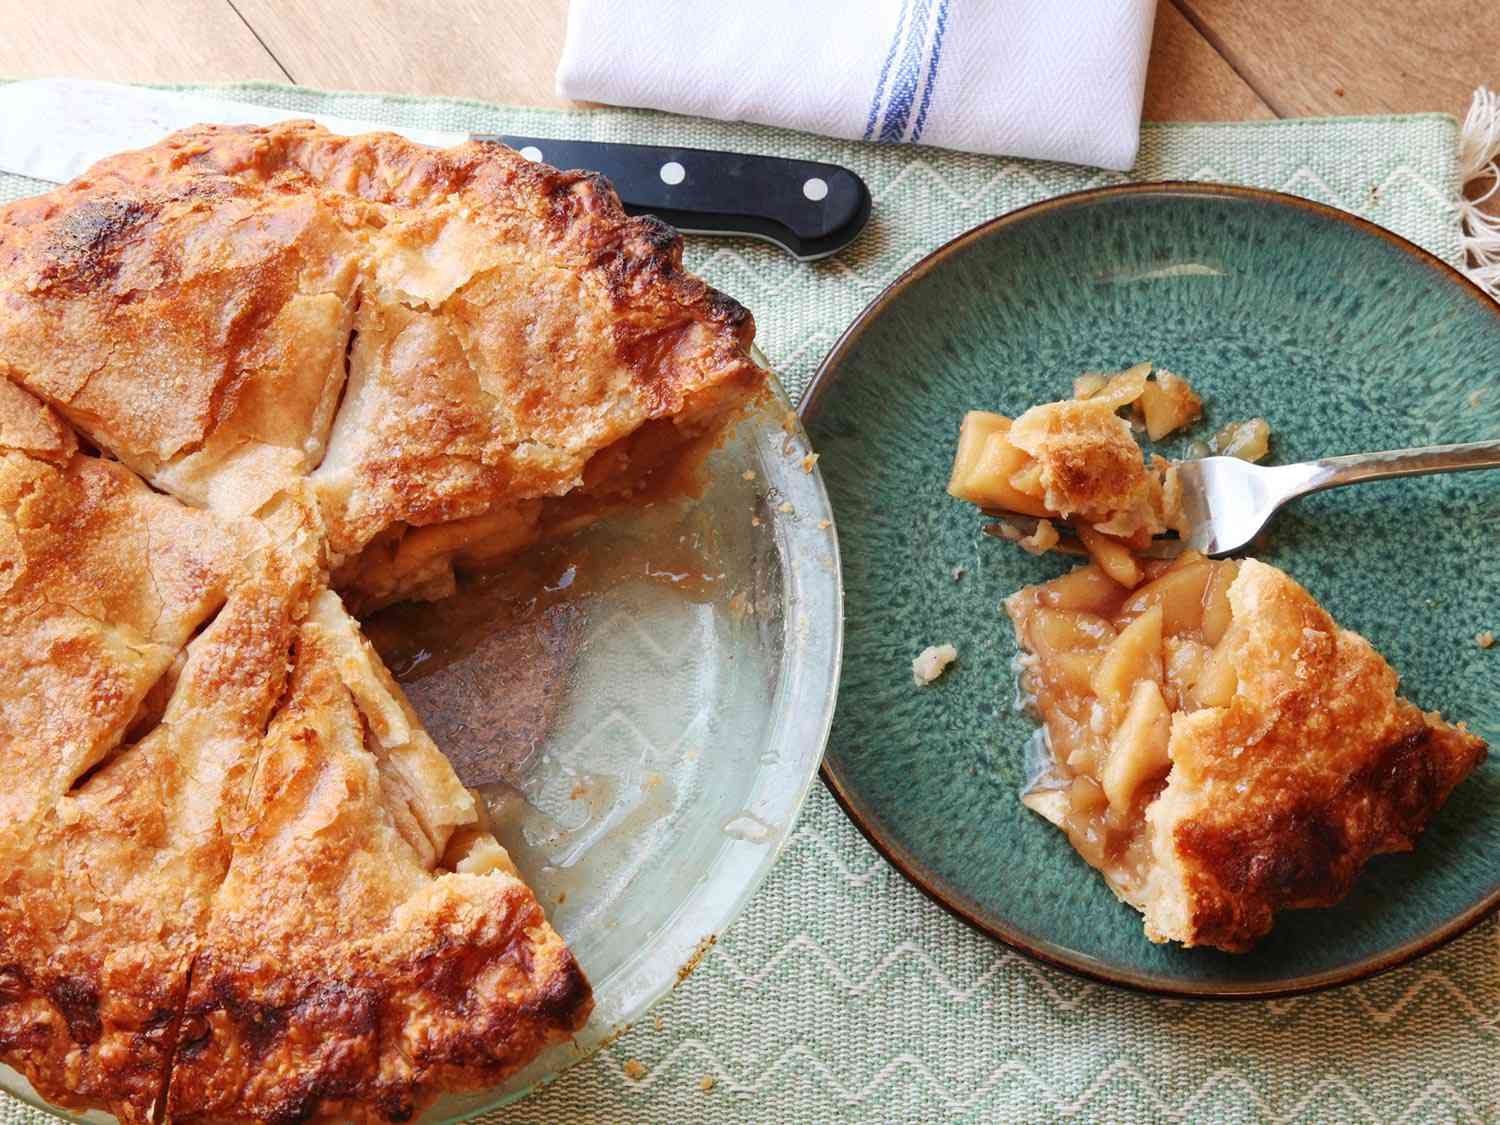 A slice of gooey apple pie on a plate, next to the remainder of the pie in a glass pie dish